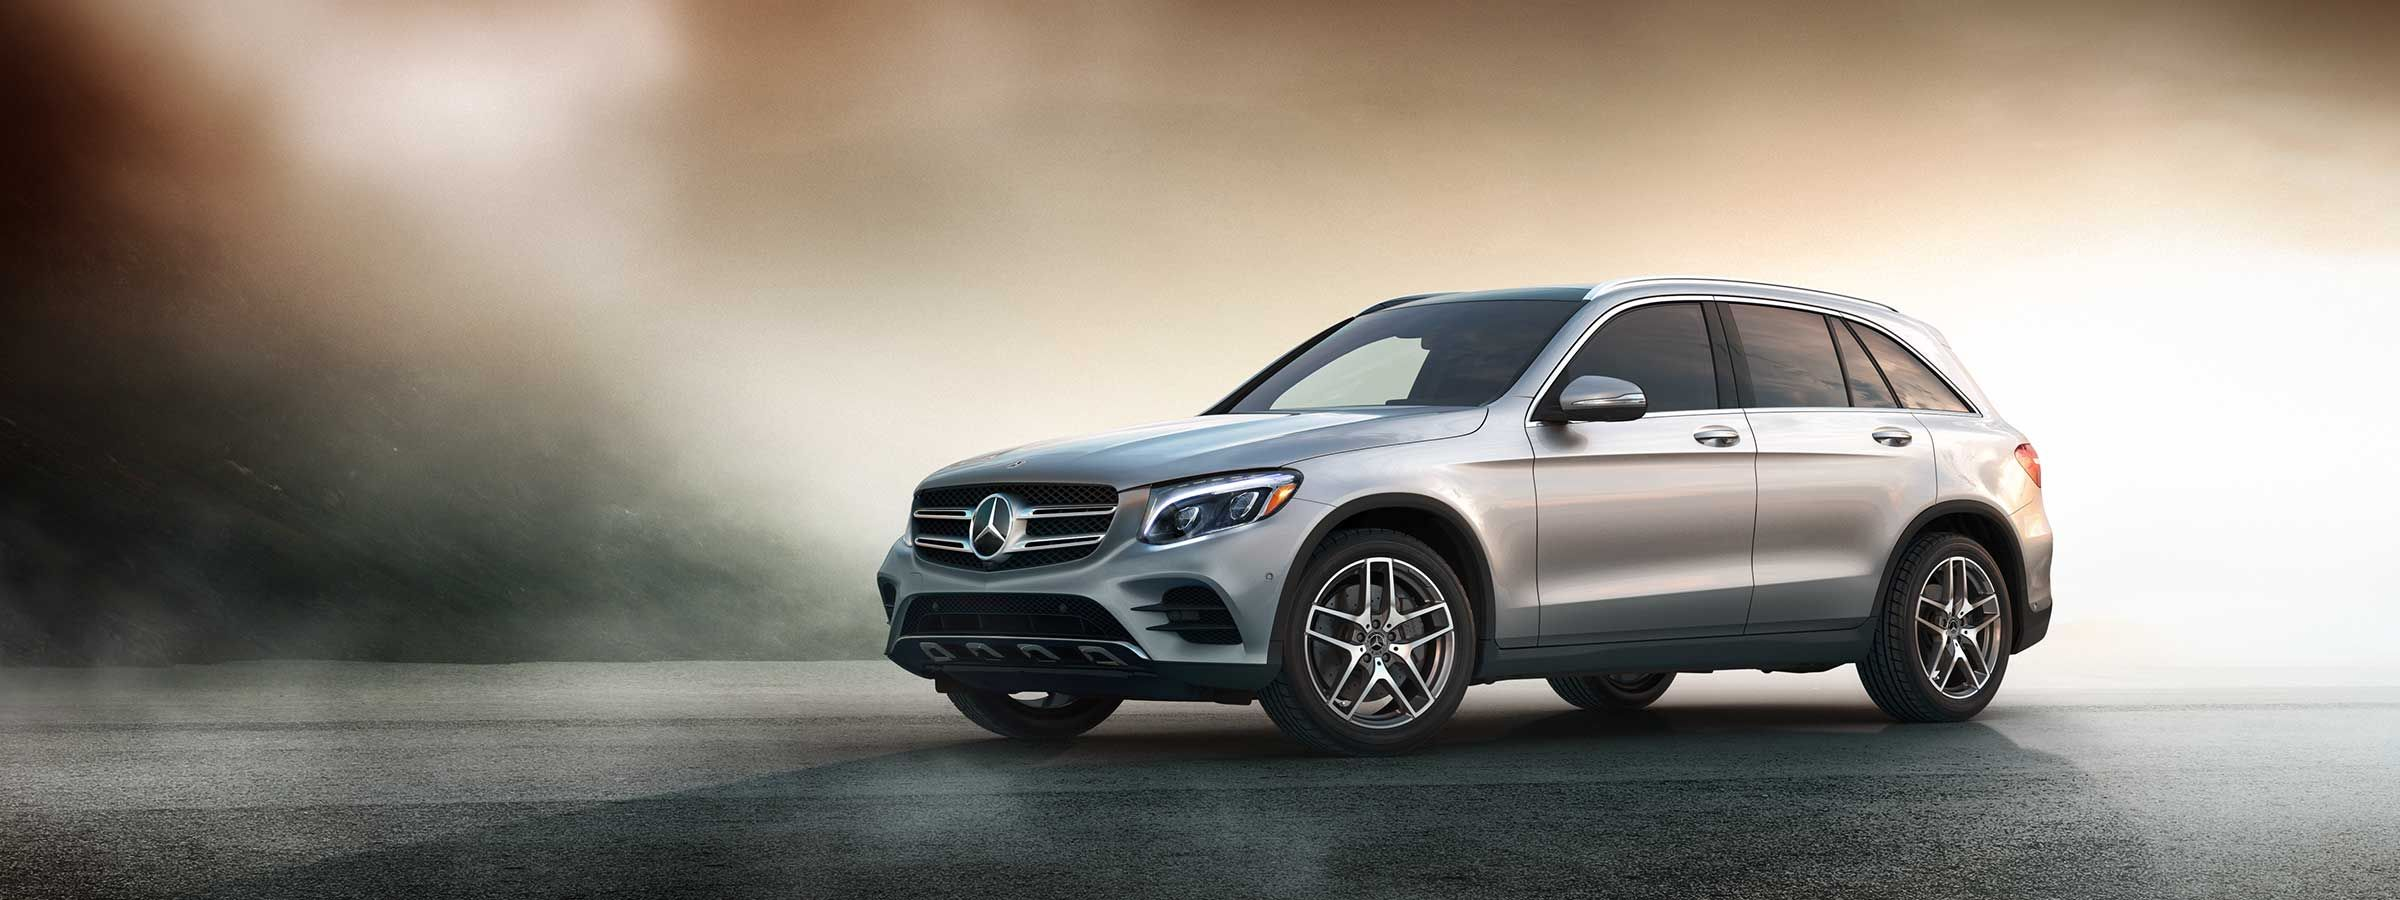 A 2019 GLC SUV stands alone, its impressive body style on